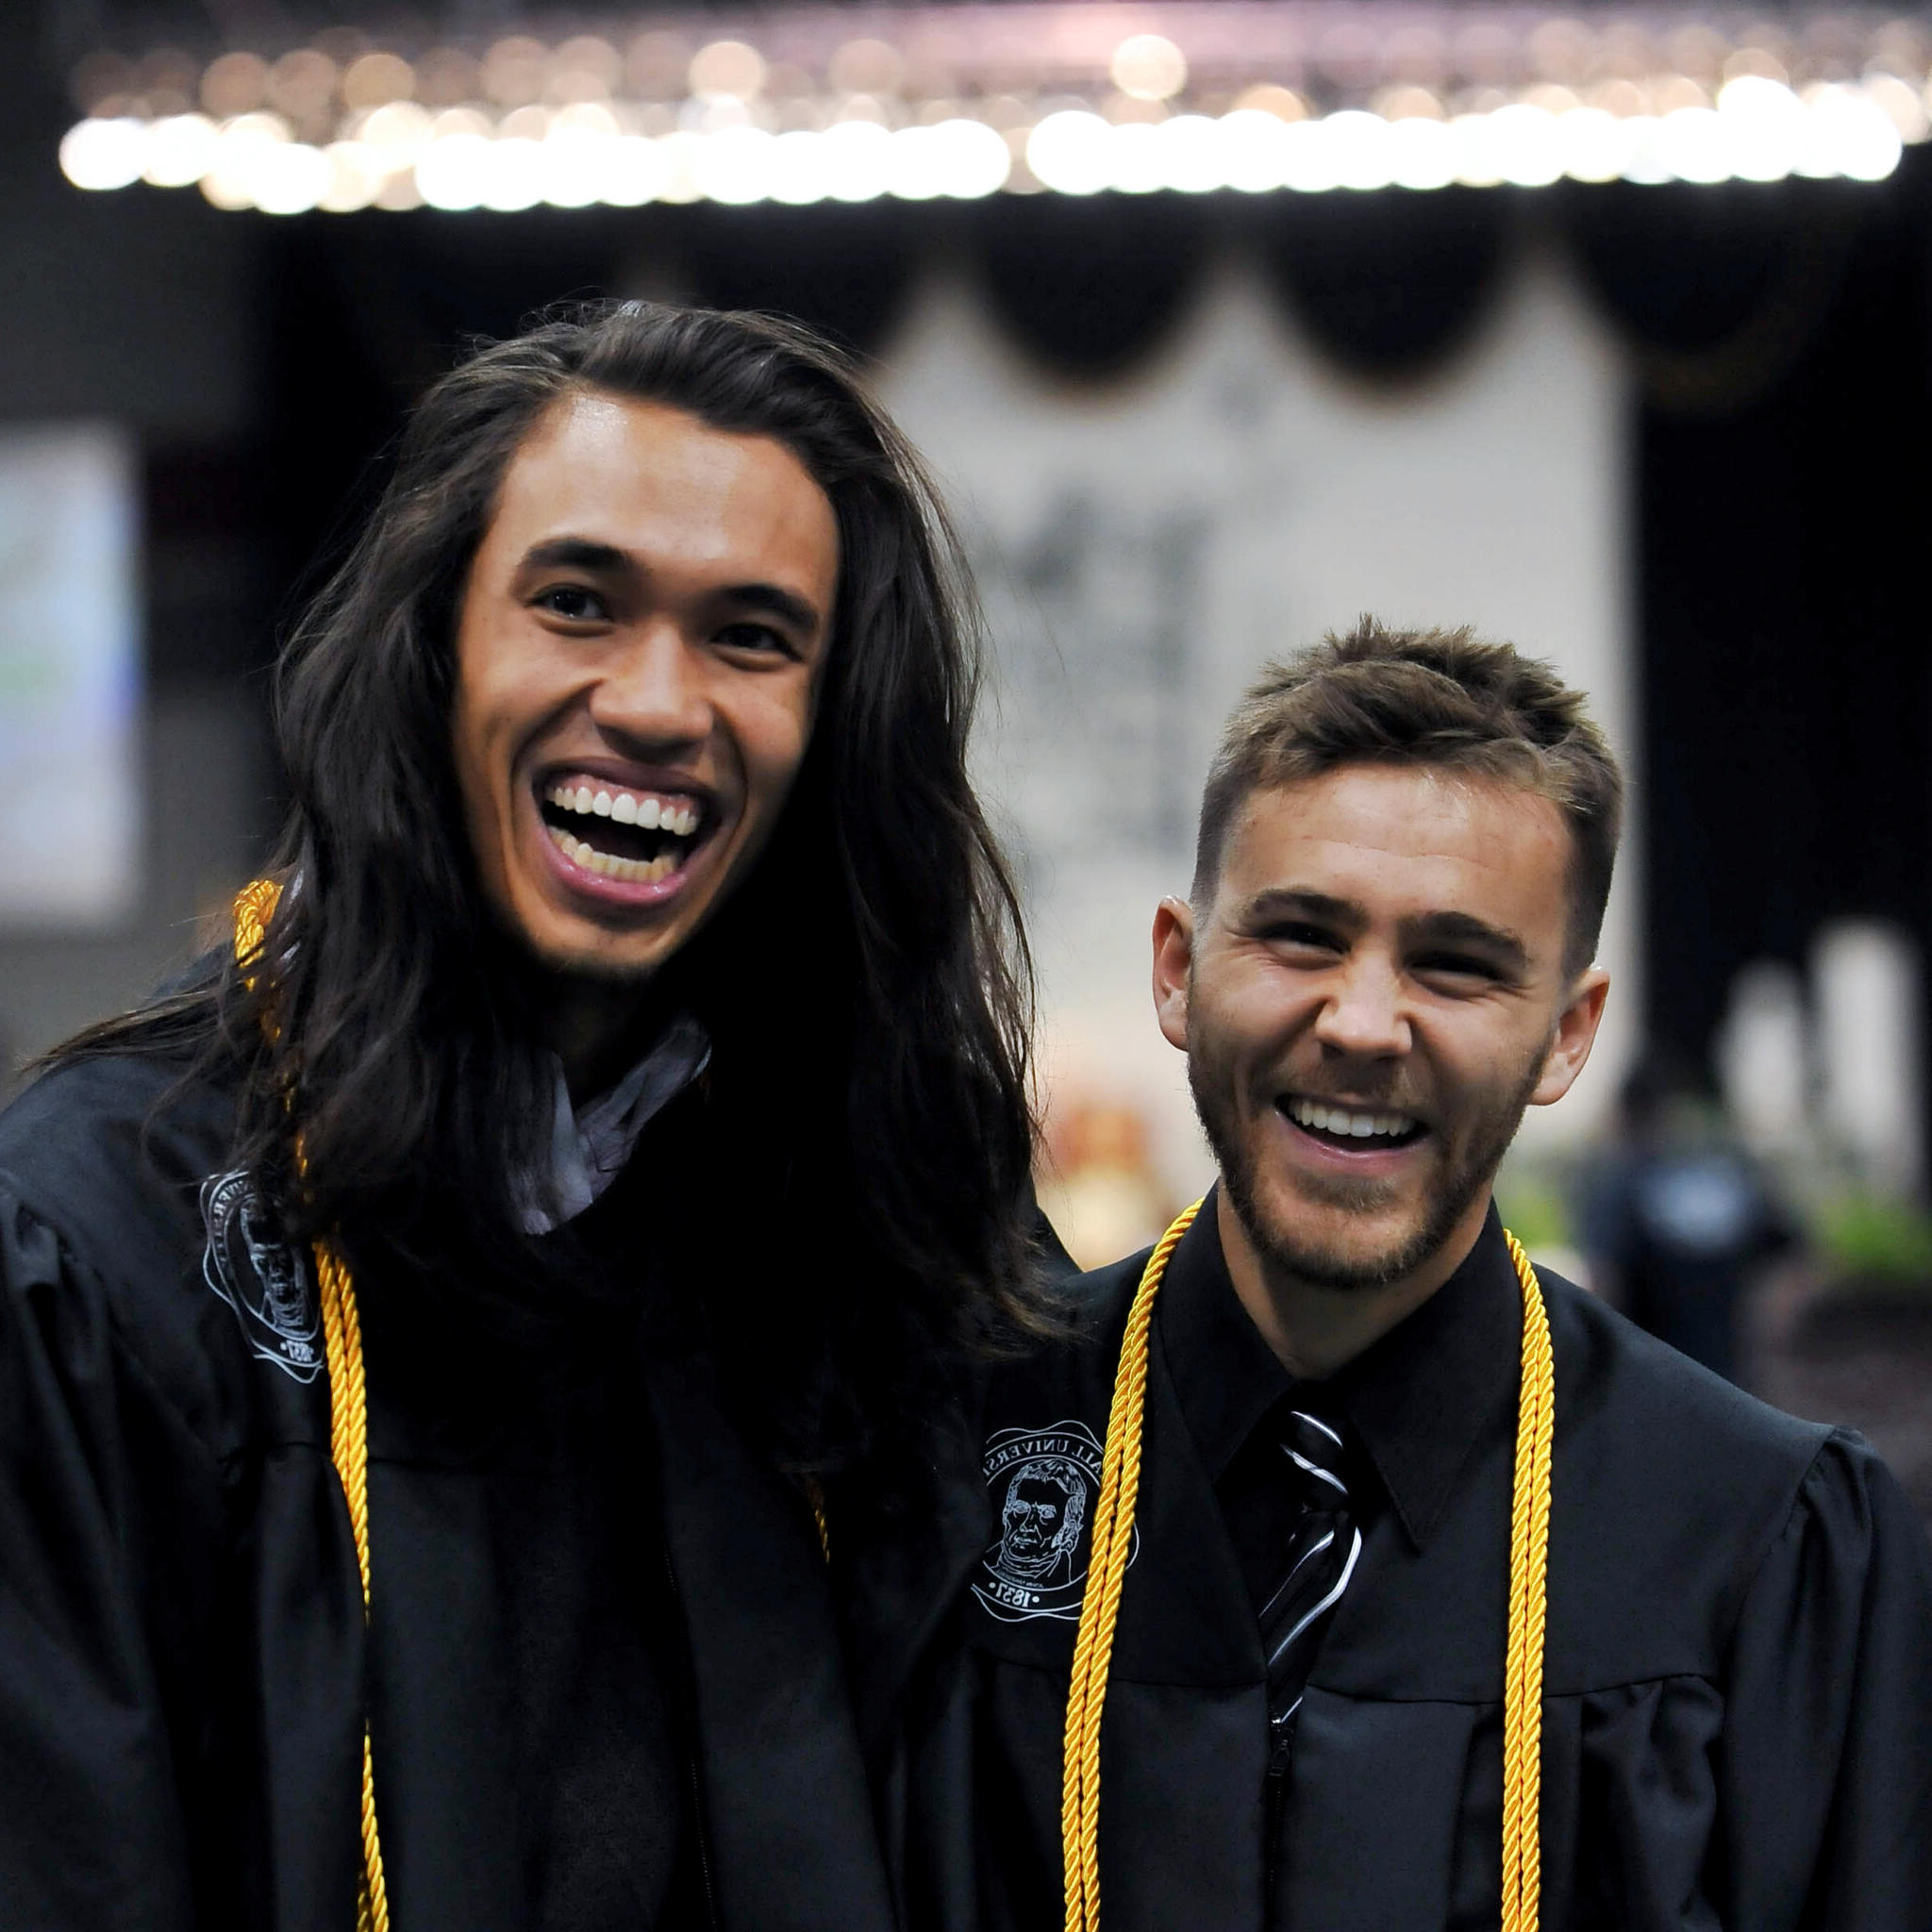 Photo of two Marshall students at commencement